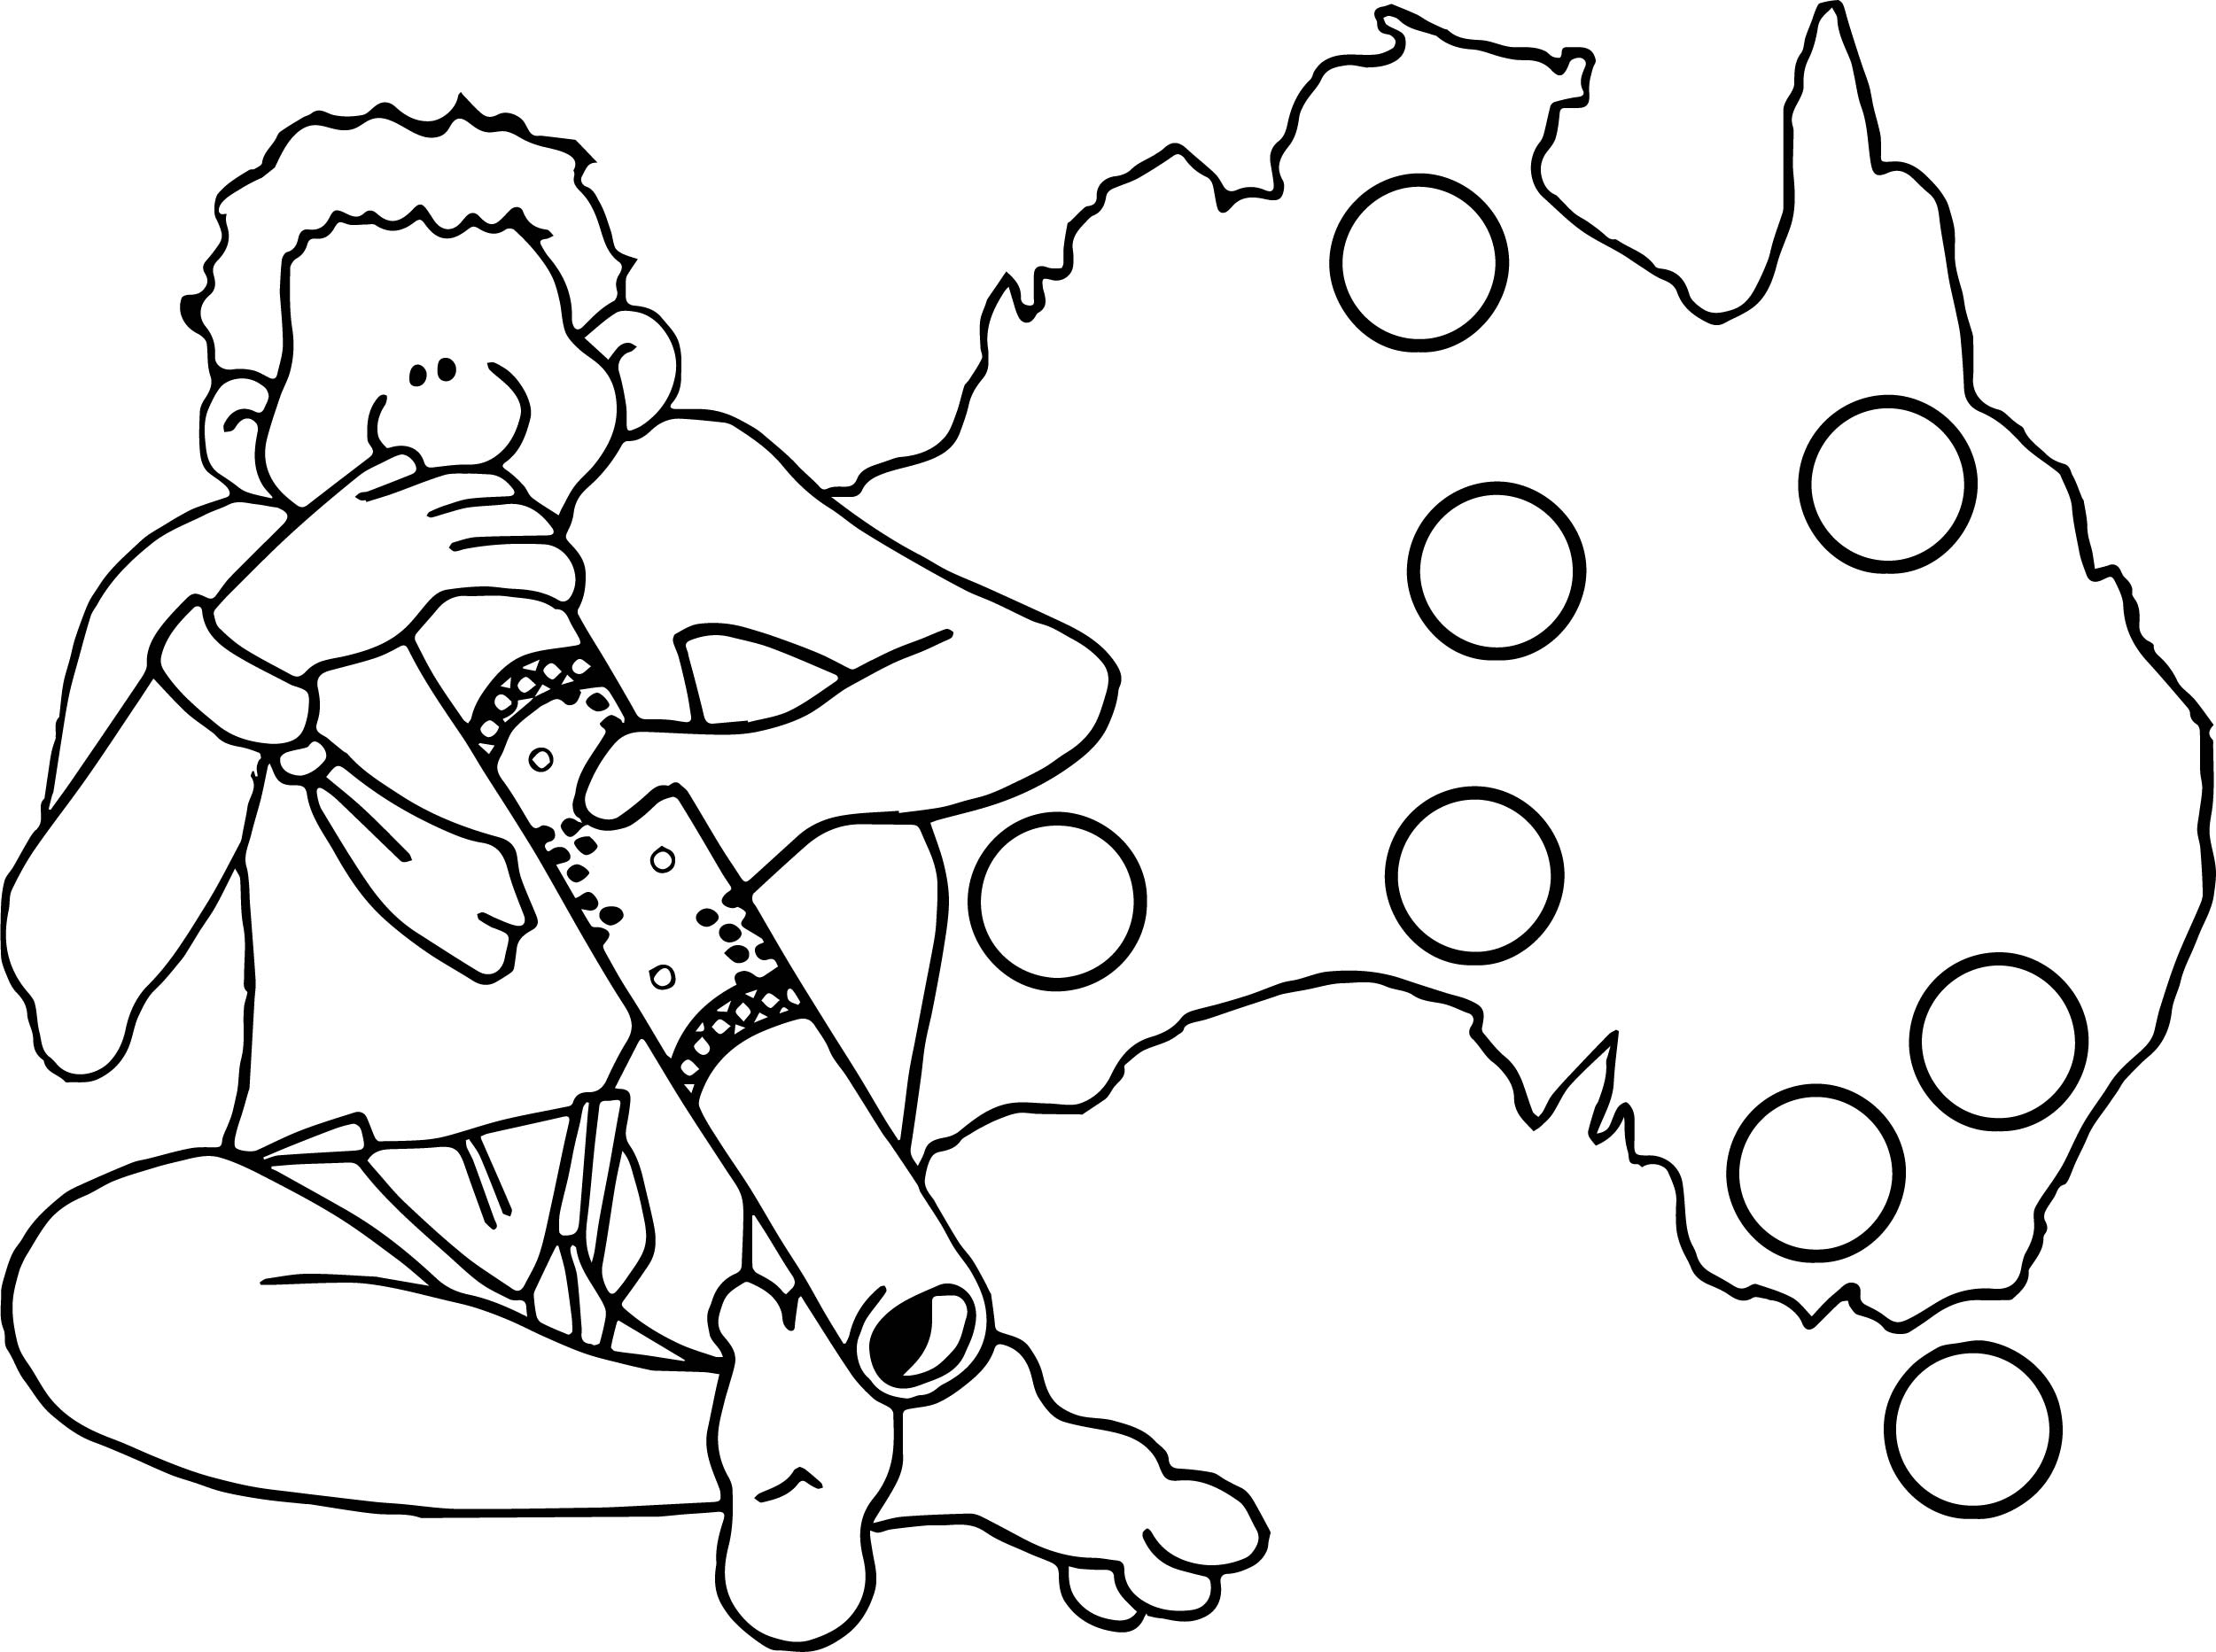 australia coloring pages - australia map man aboriginal coloring page